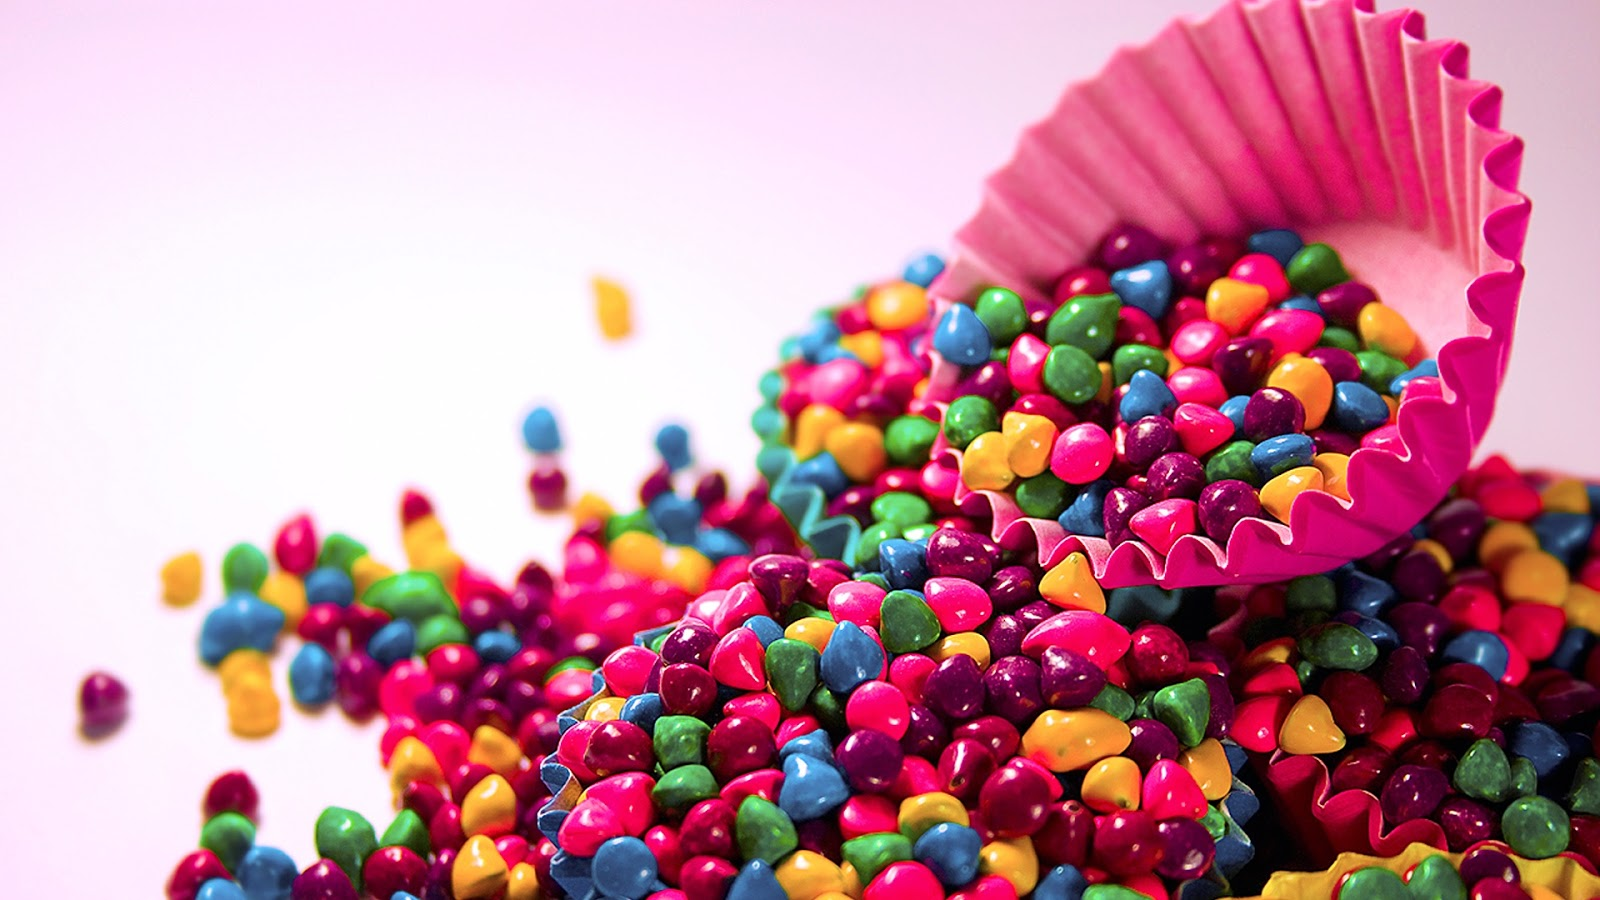 colorful candy wallpaper 8 - photo #14